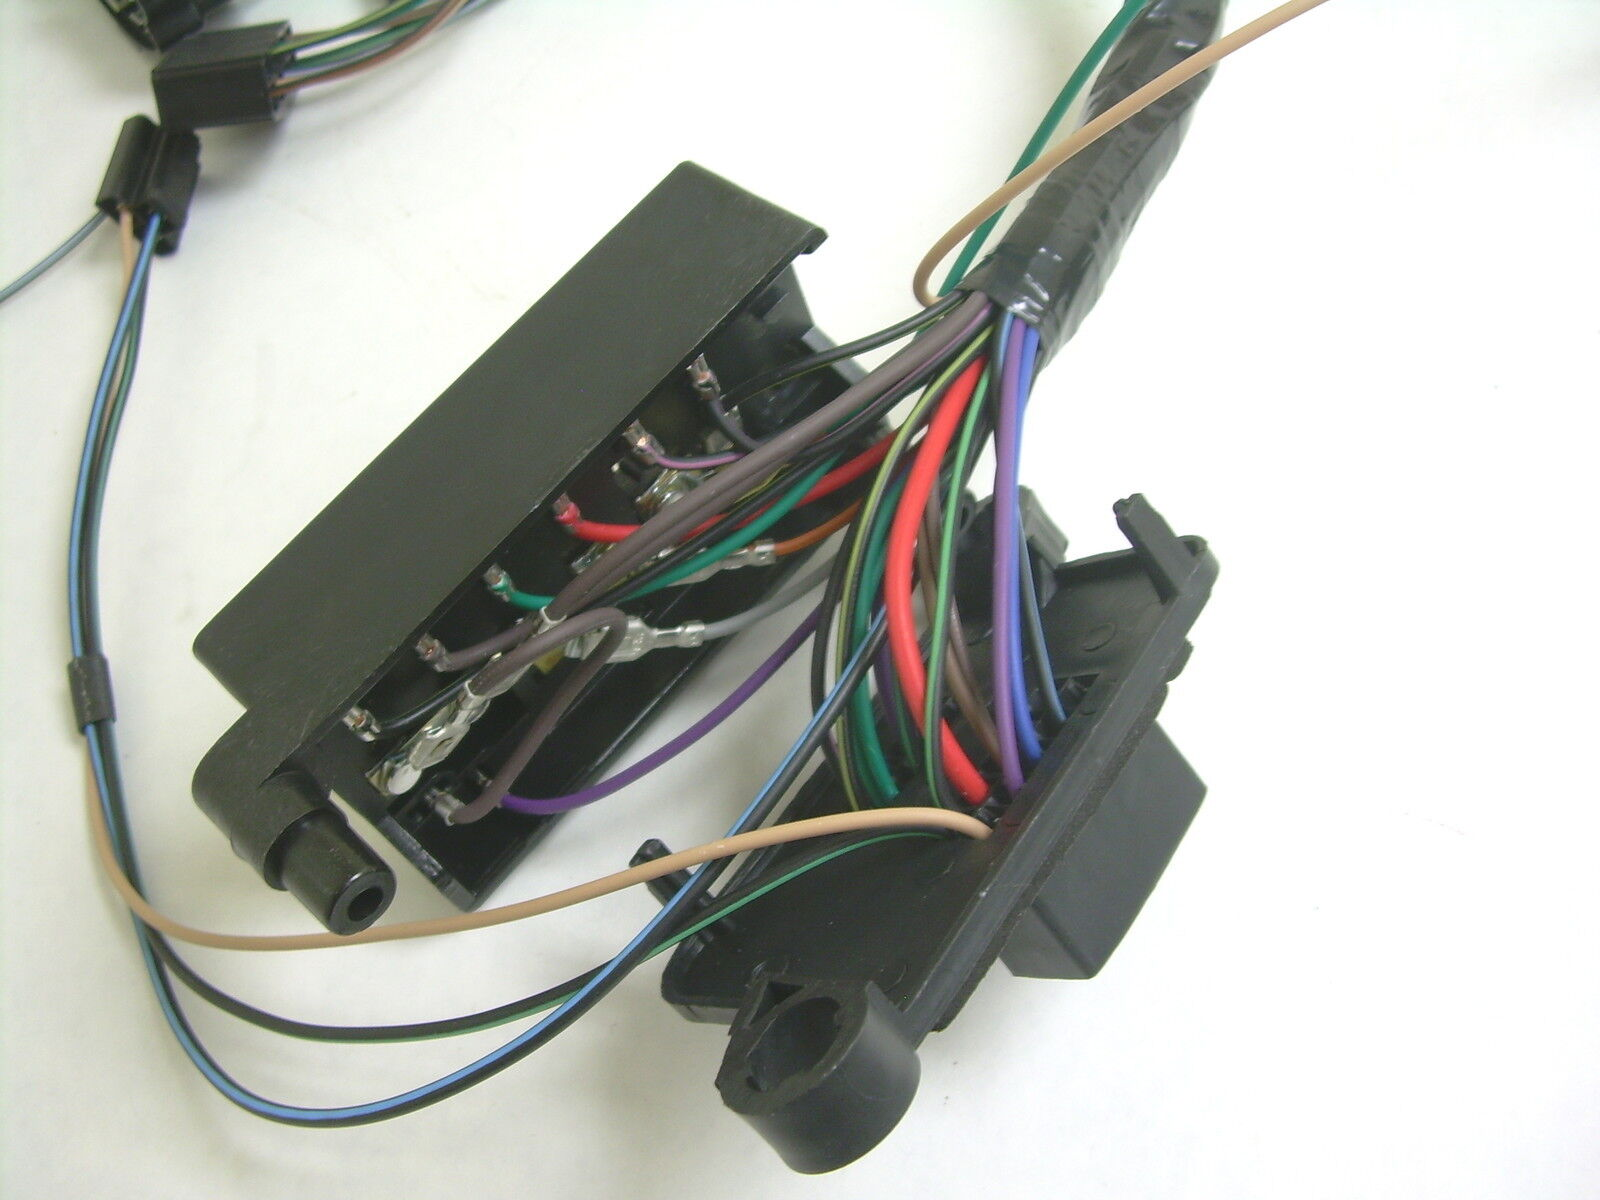 1964 chevy impala ss under dash wiring harness with fusebox mt at Wiring Harness For 1964 Chevy Impala 1964 chevy impala ss under dash wiring harness with fusebox mt at w ac 9 \u2022 cad $413 01 9 of 9 see more wiring harness for 1966 chevy impala